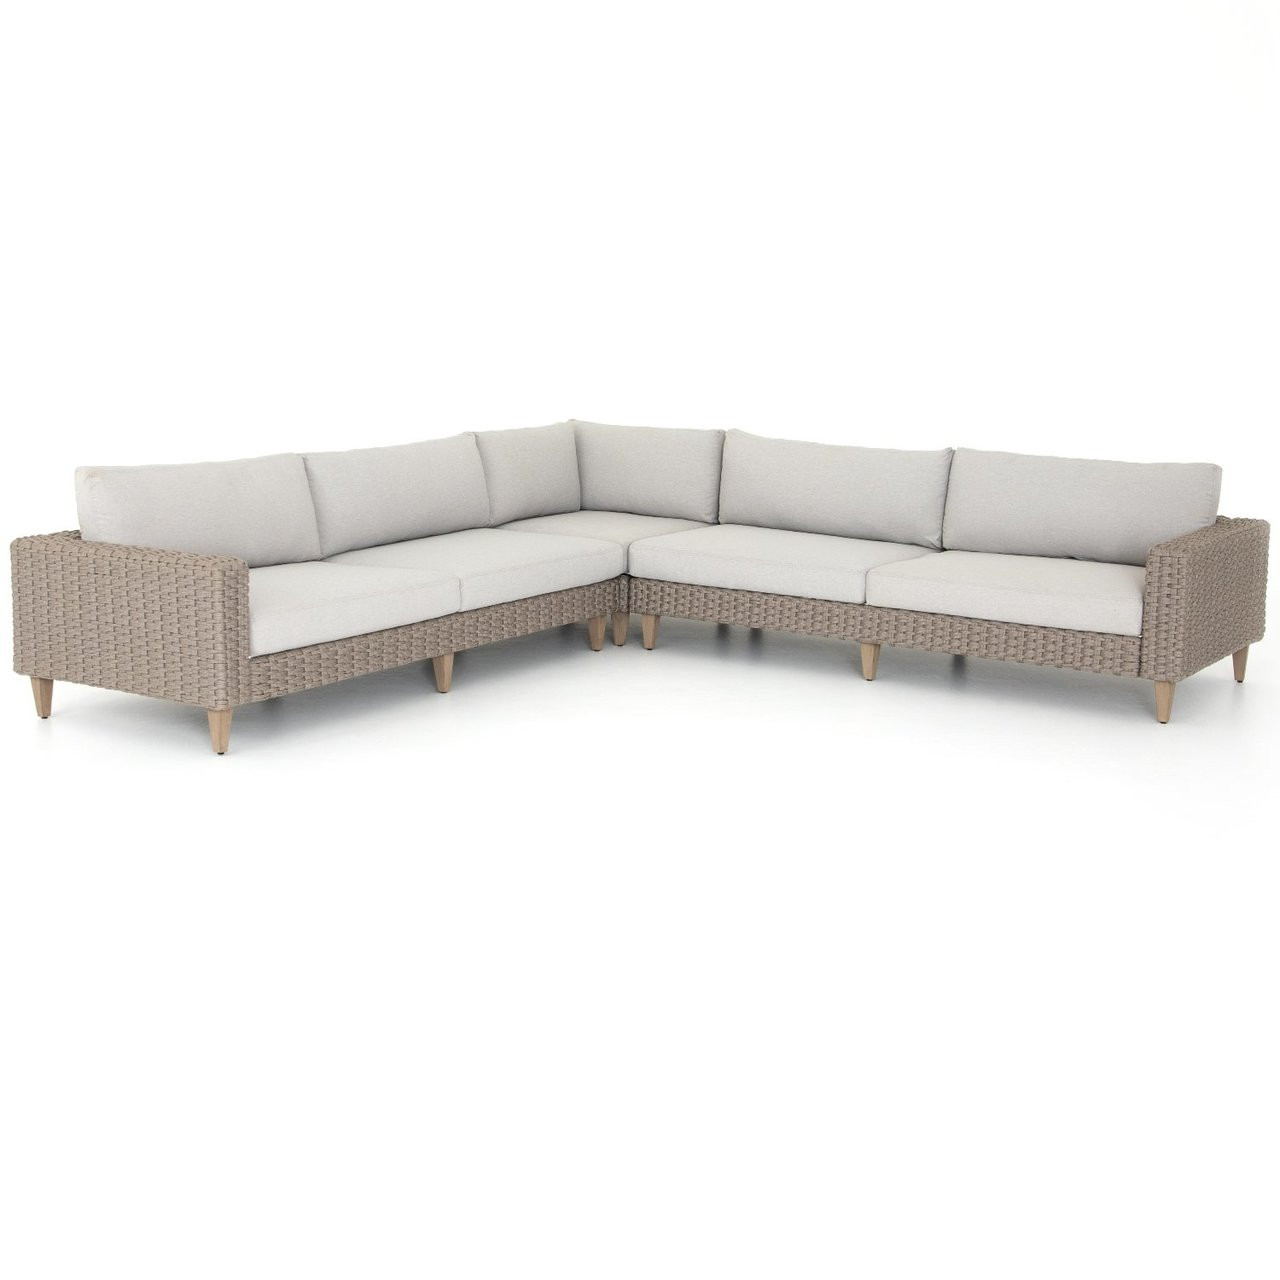 Remi Grey Woven Rope Outdoor 3-Pc Corner Sectional Sofa